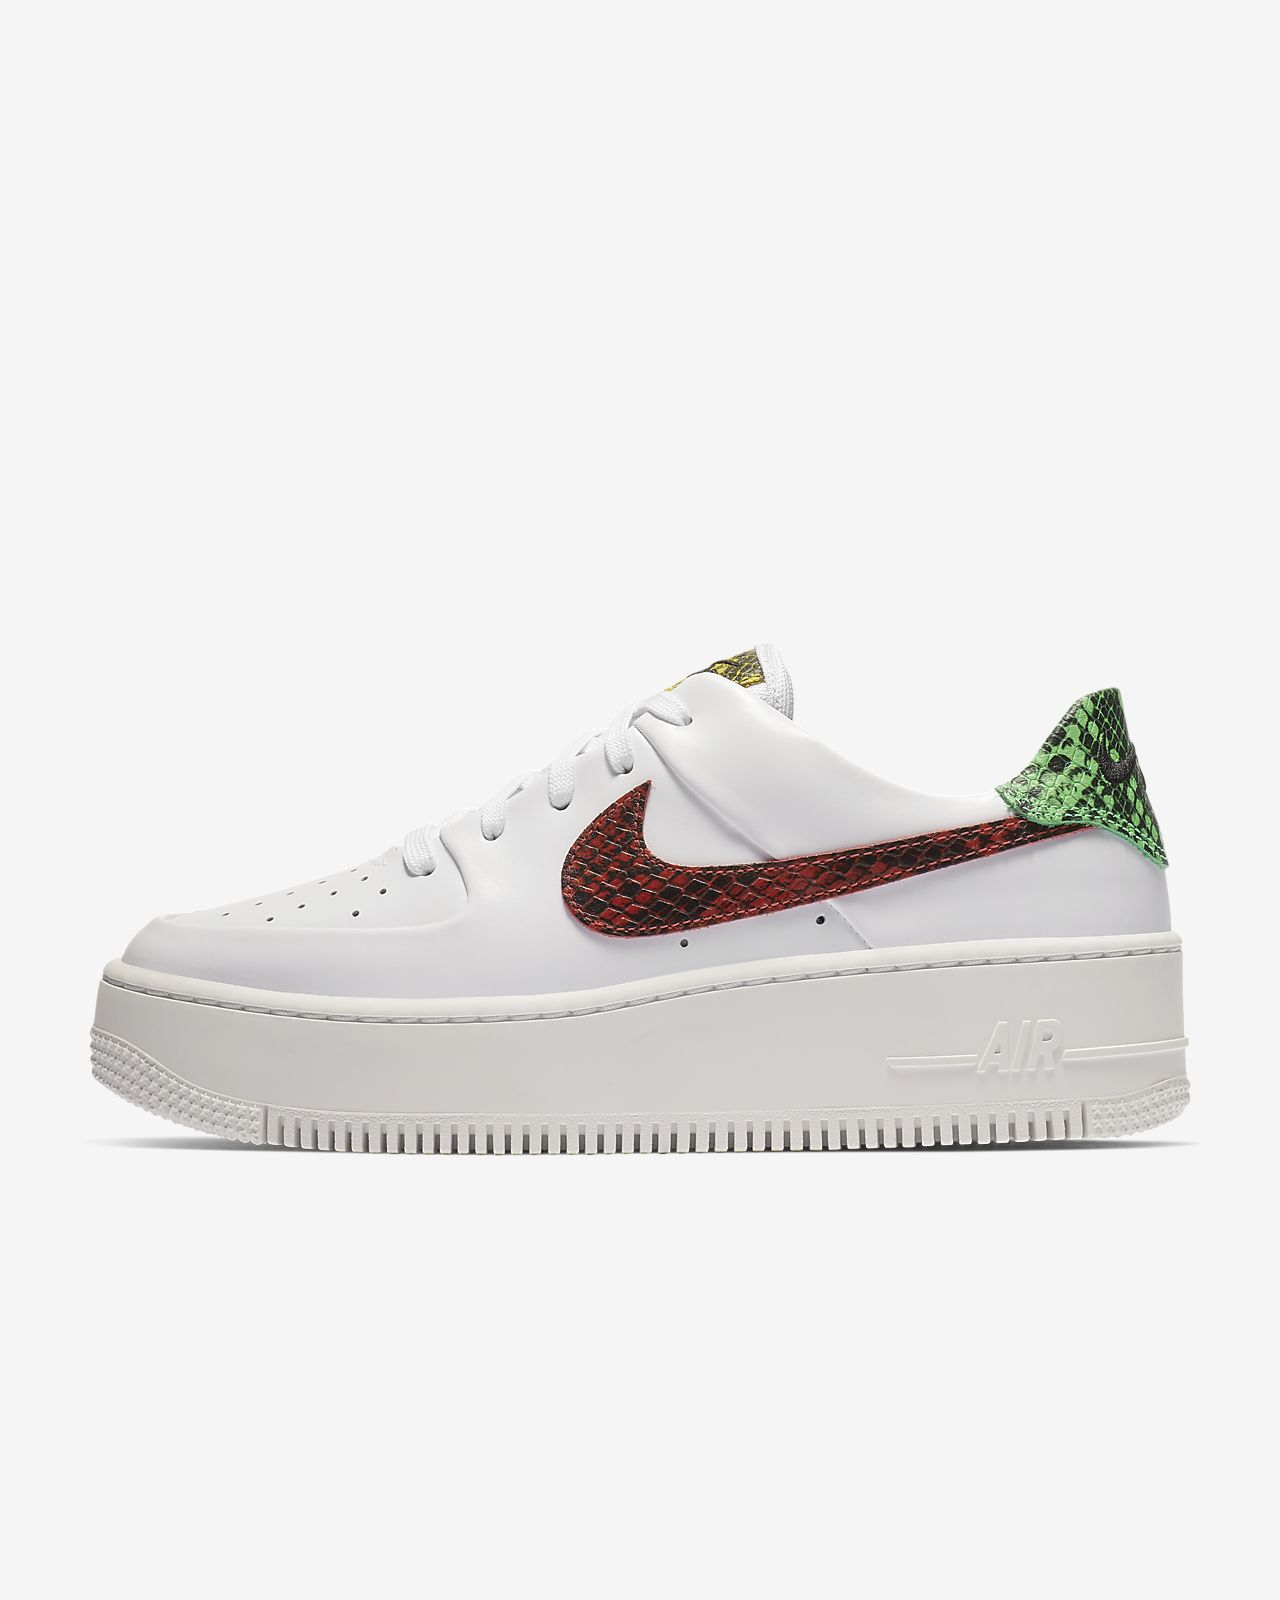 wholesale dealer 9b274 f9344 ... Buty damskie Nike Air Force 1 Sage Low Premium Animal